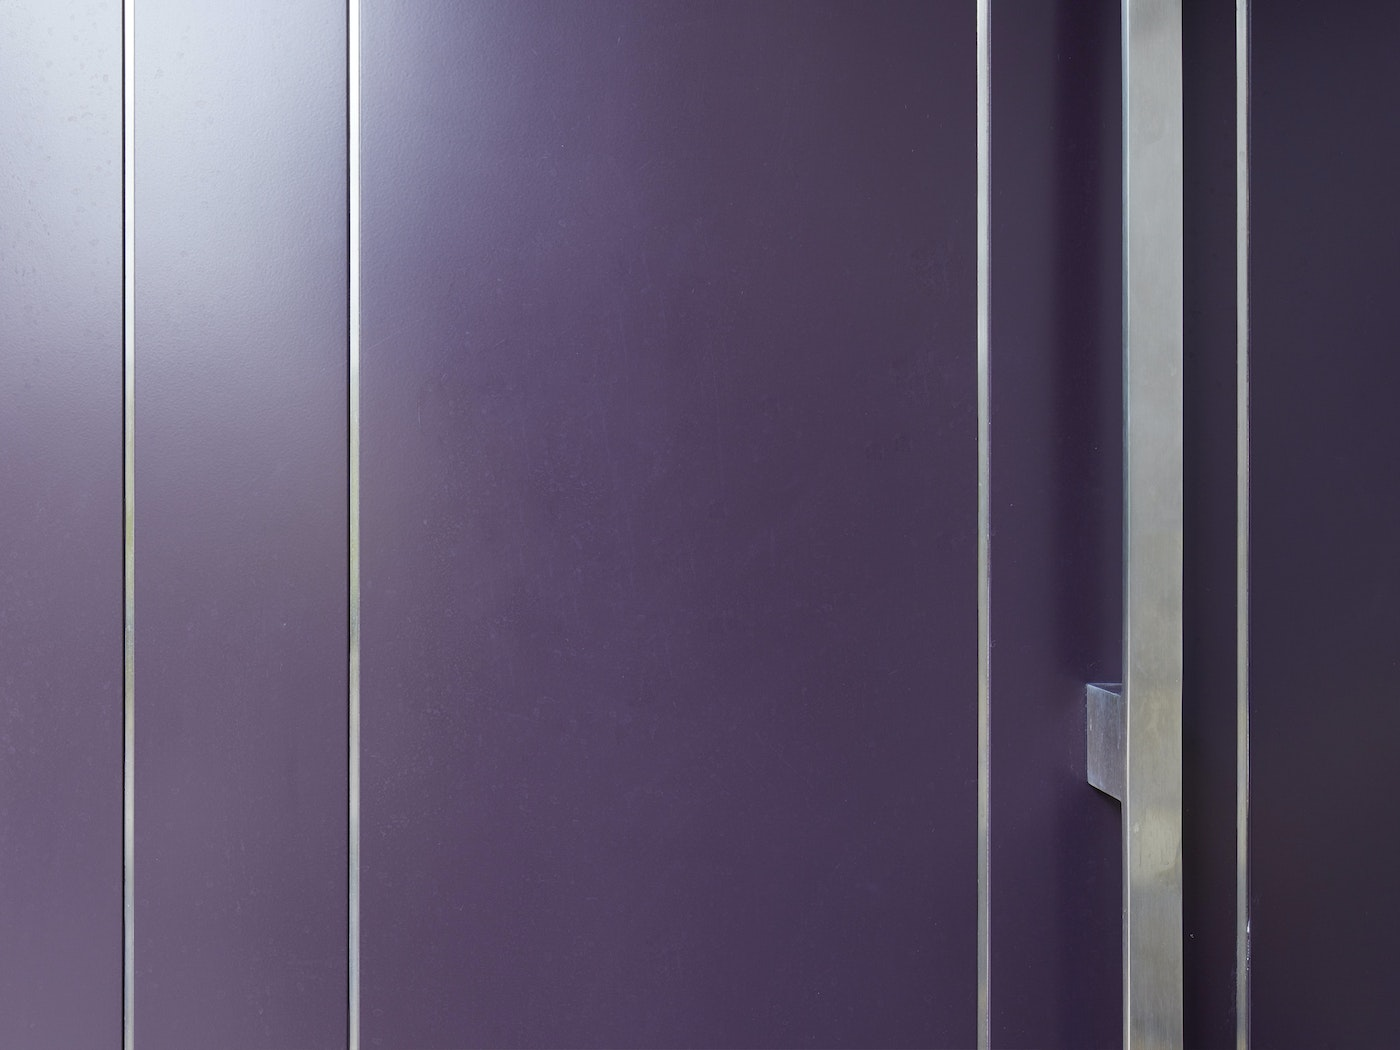 This close up shows the smooth painted purple finish and stainless steel detailing